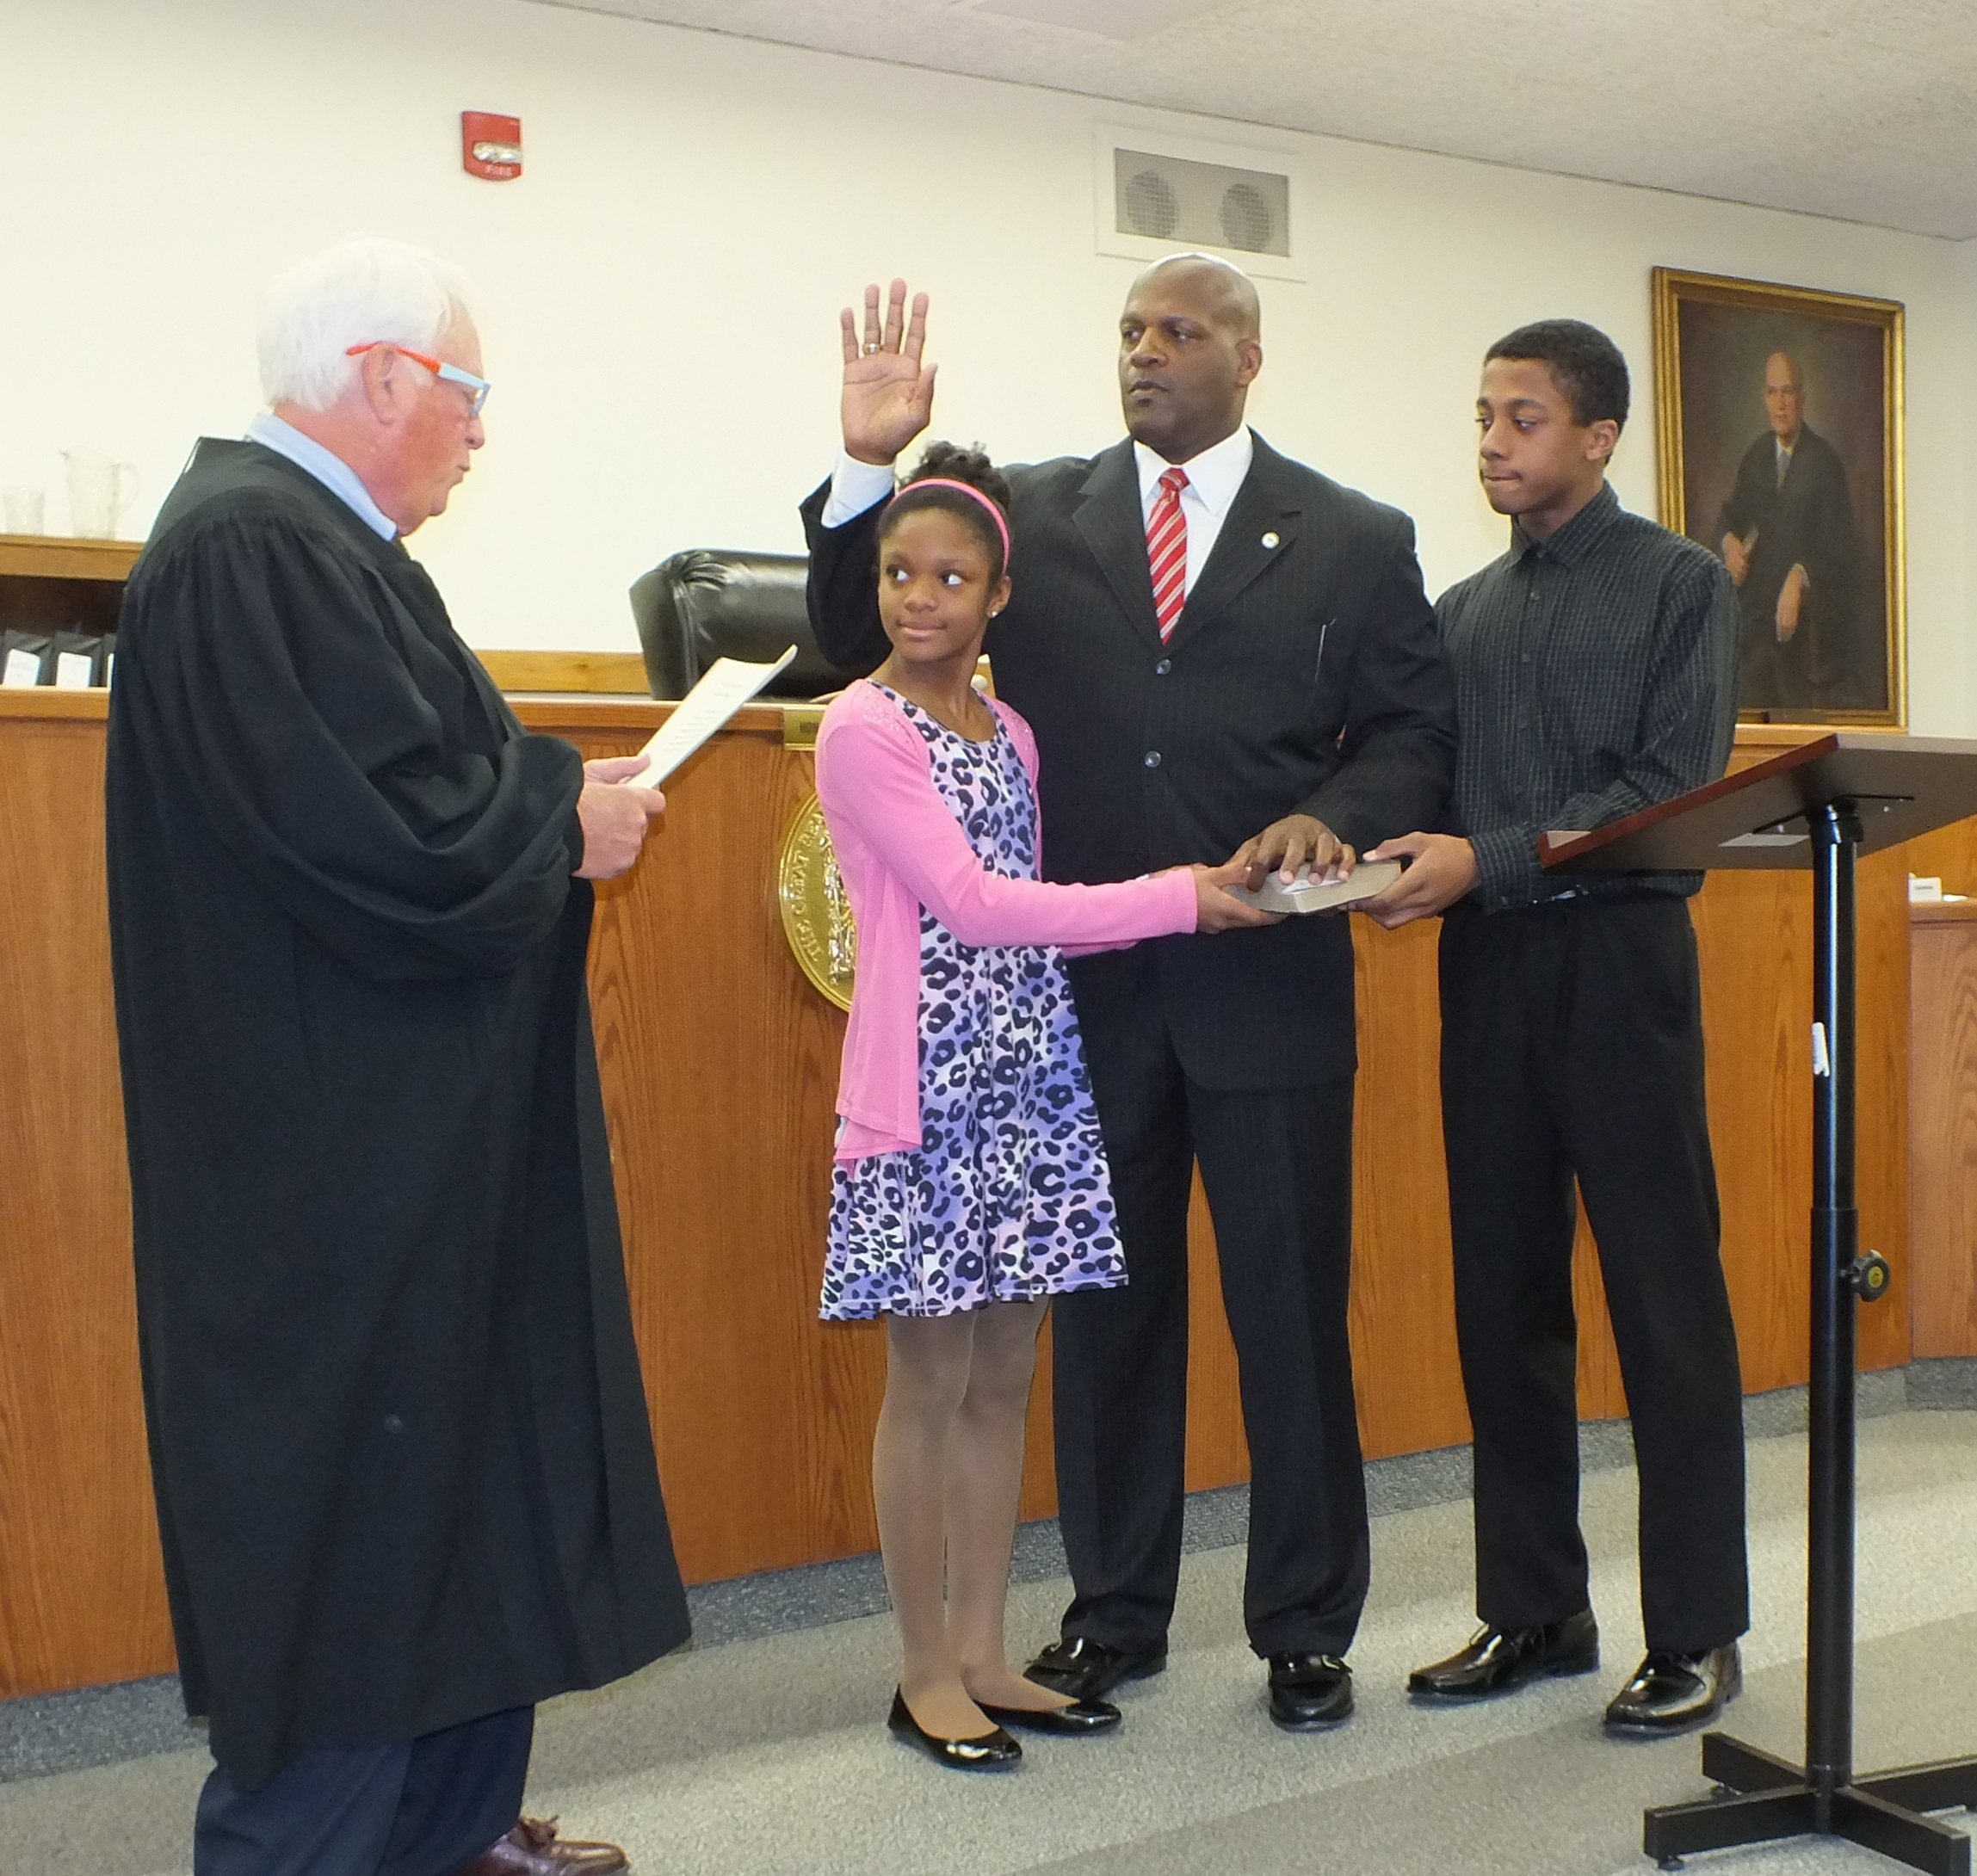 Ron Moten was sworn in as Chief of Detectives for the Camden County Prosecutor's Office on Wednesday, April 1, 2015.  Standing with Chief Moten are his daughter, Madison, 10, and his son, RJ, 12.  Retired Superior Court Judge Isaiah Steinberg, who mentored Chief Moten, is pictured on the left.